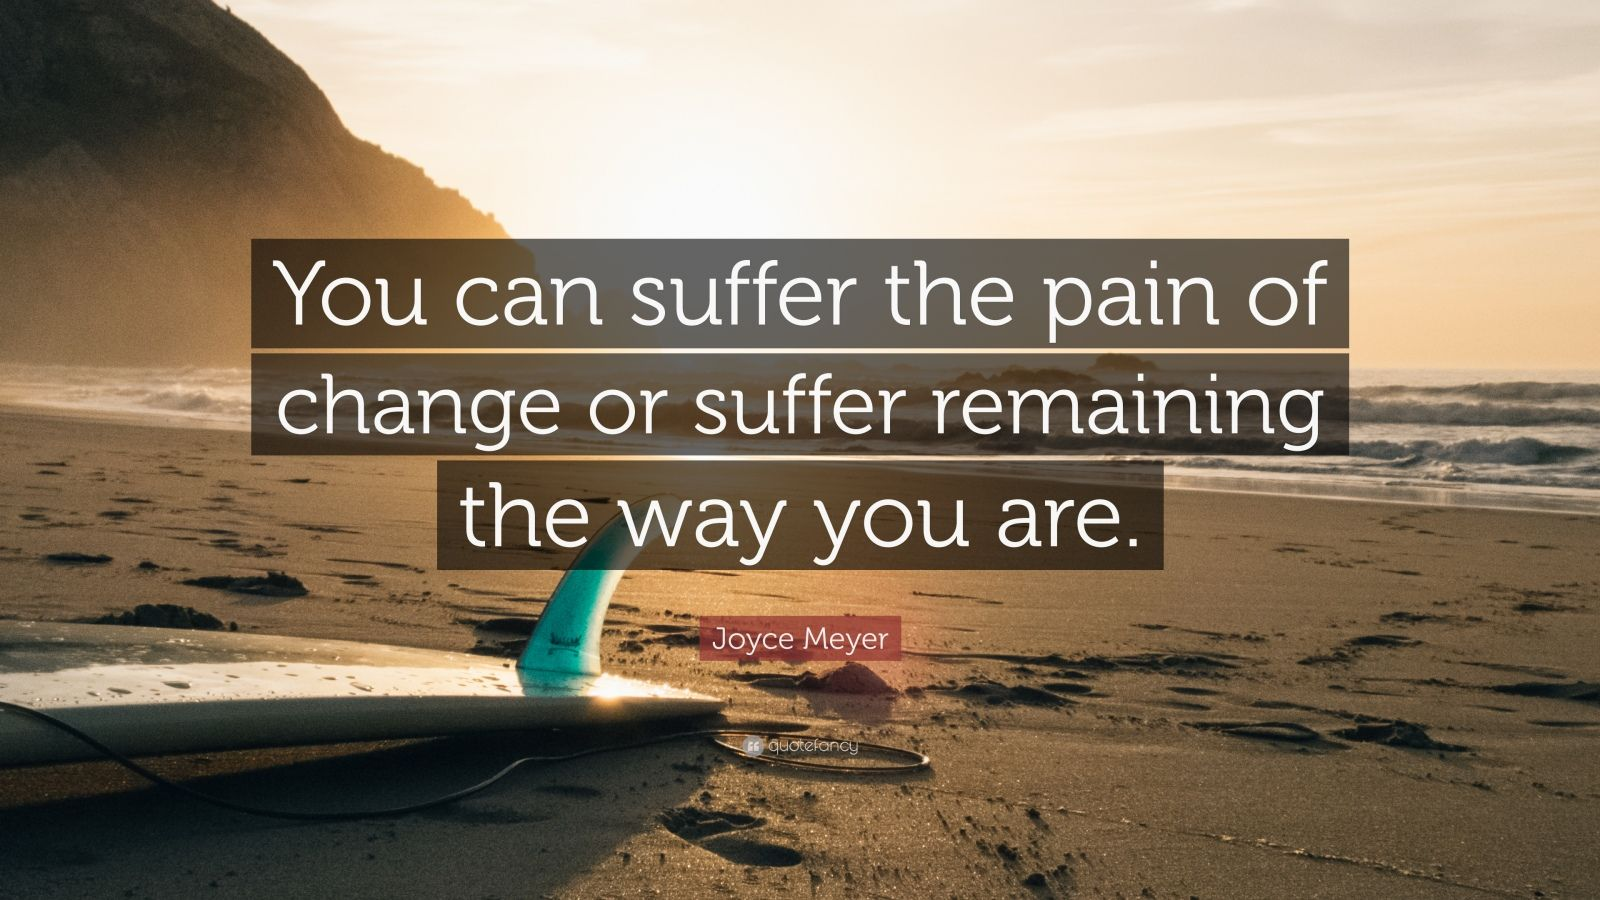 Joyce Meyer Quote You Can Suffer The Pain Of Change Or Suffer